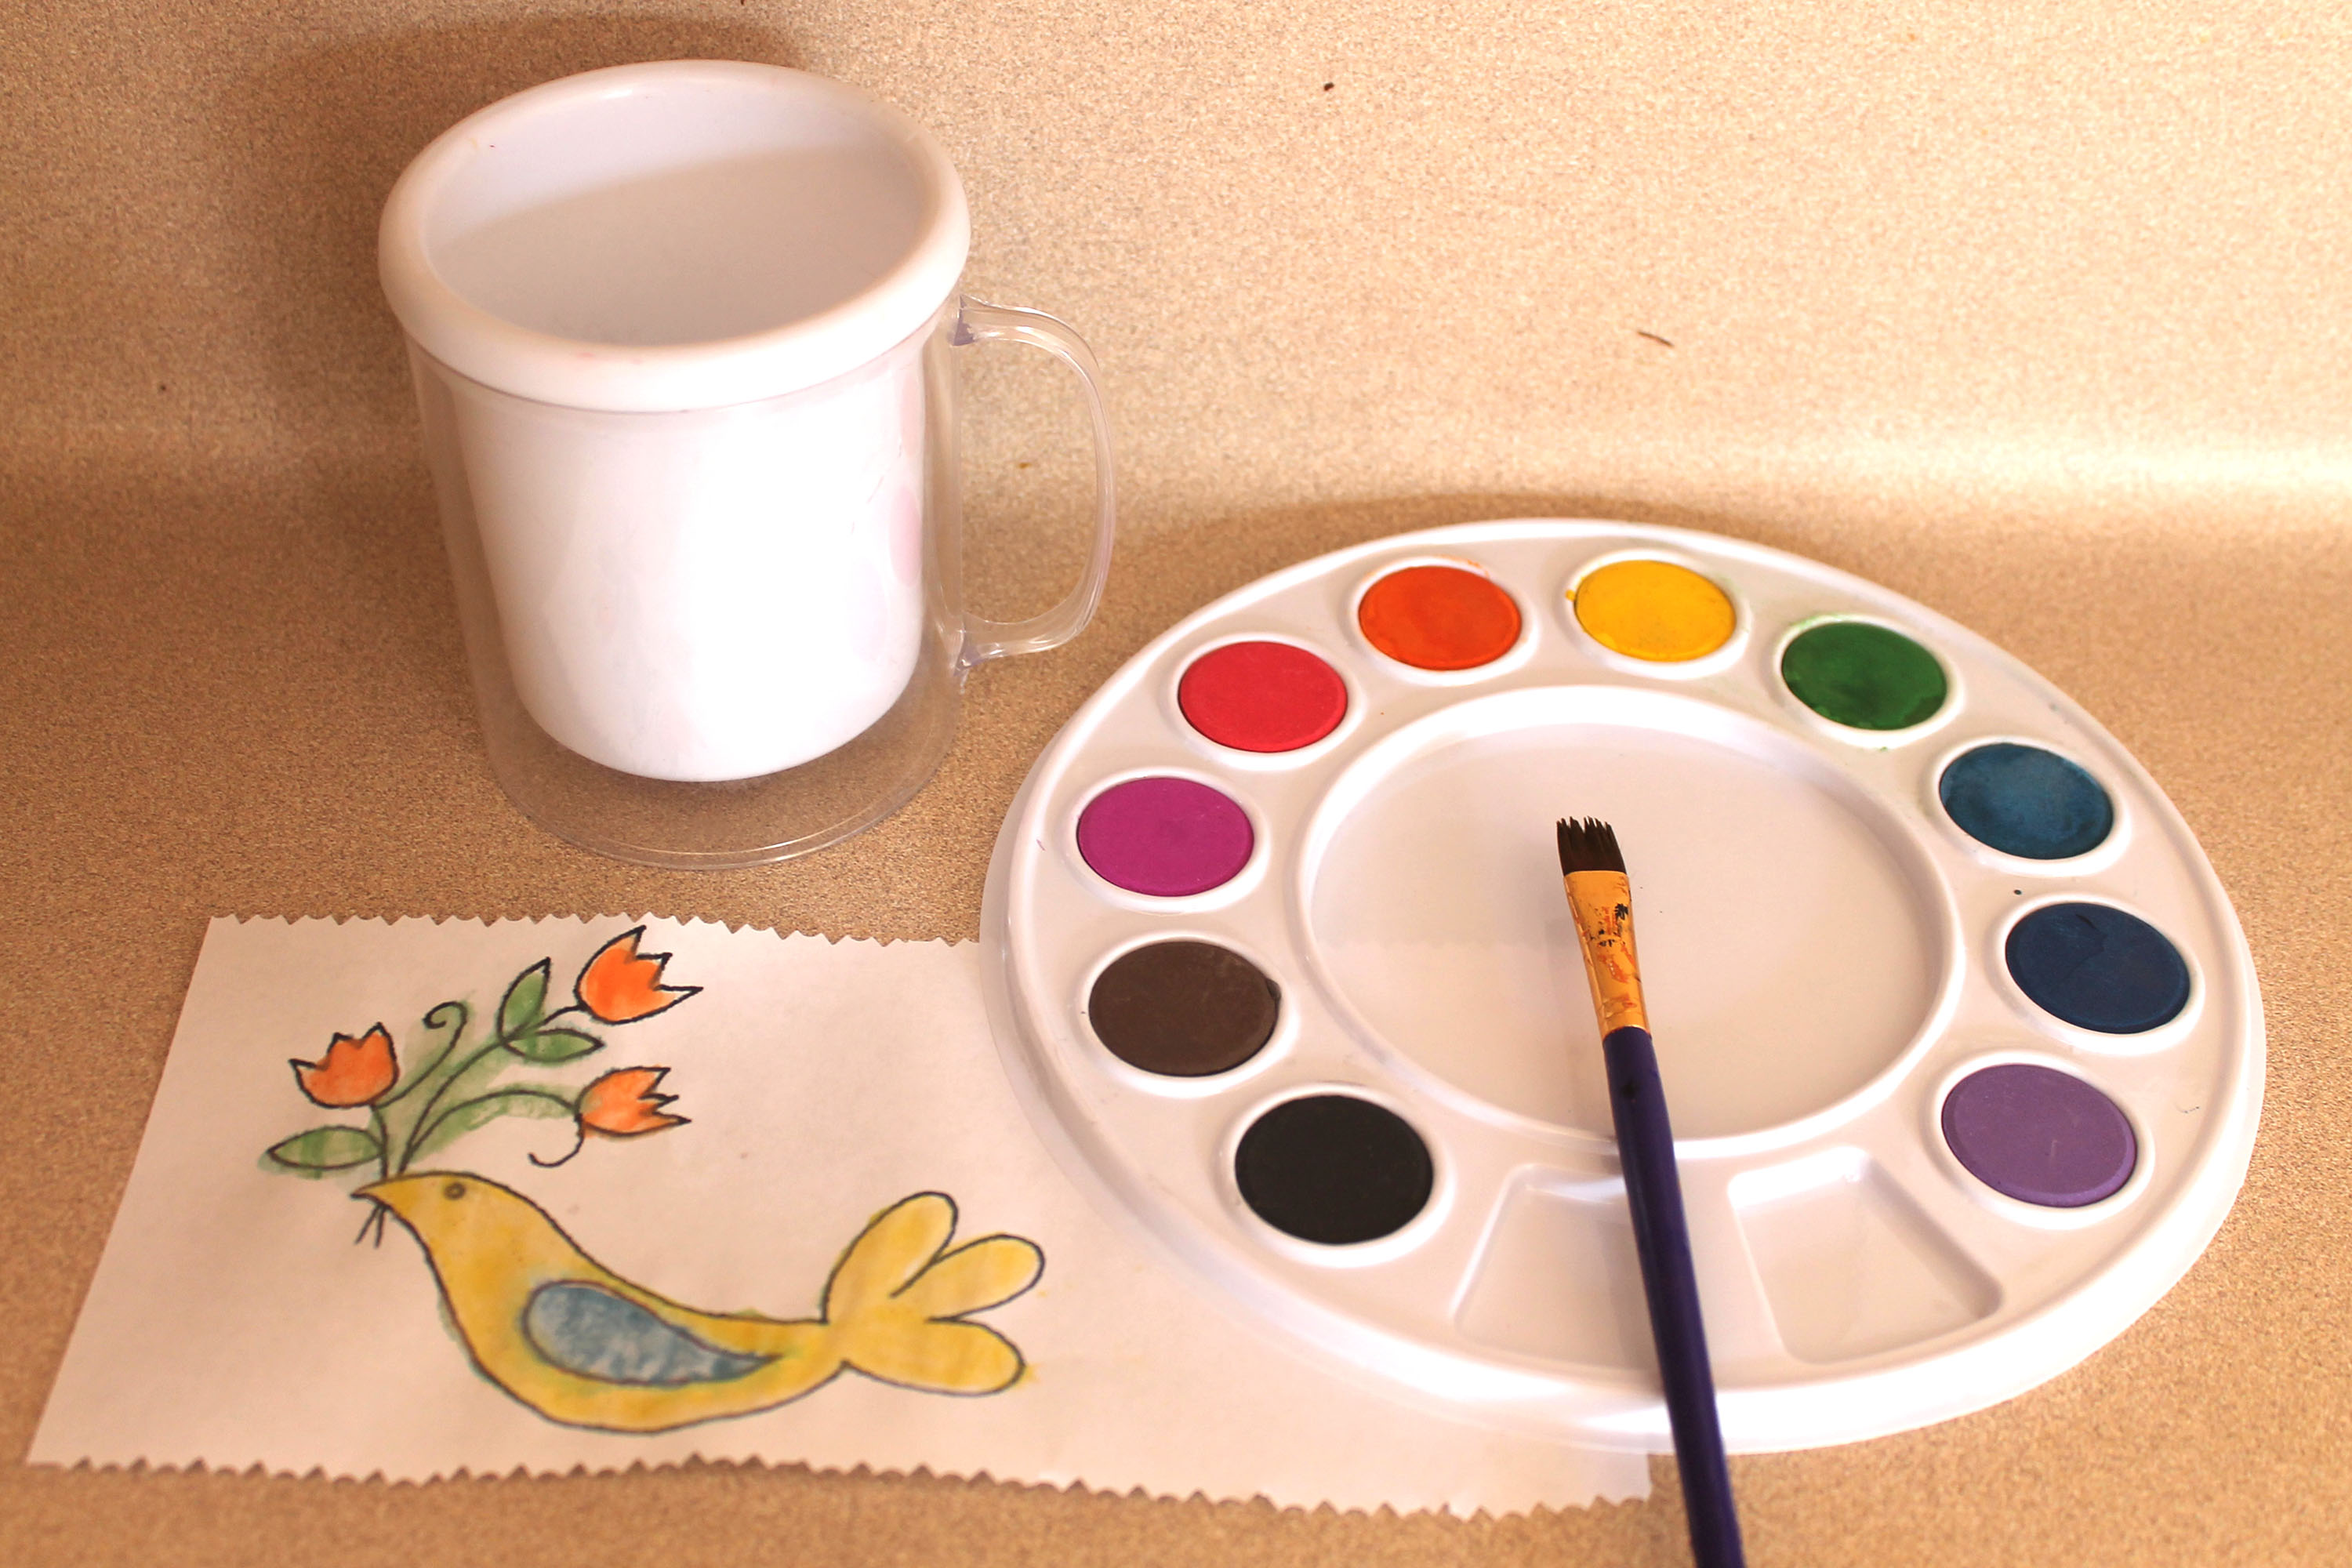 Crafts for the elderly in nursing homes - Crafts As Gift Ideas